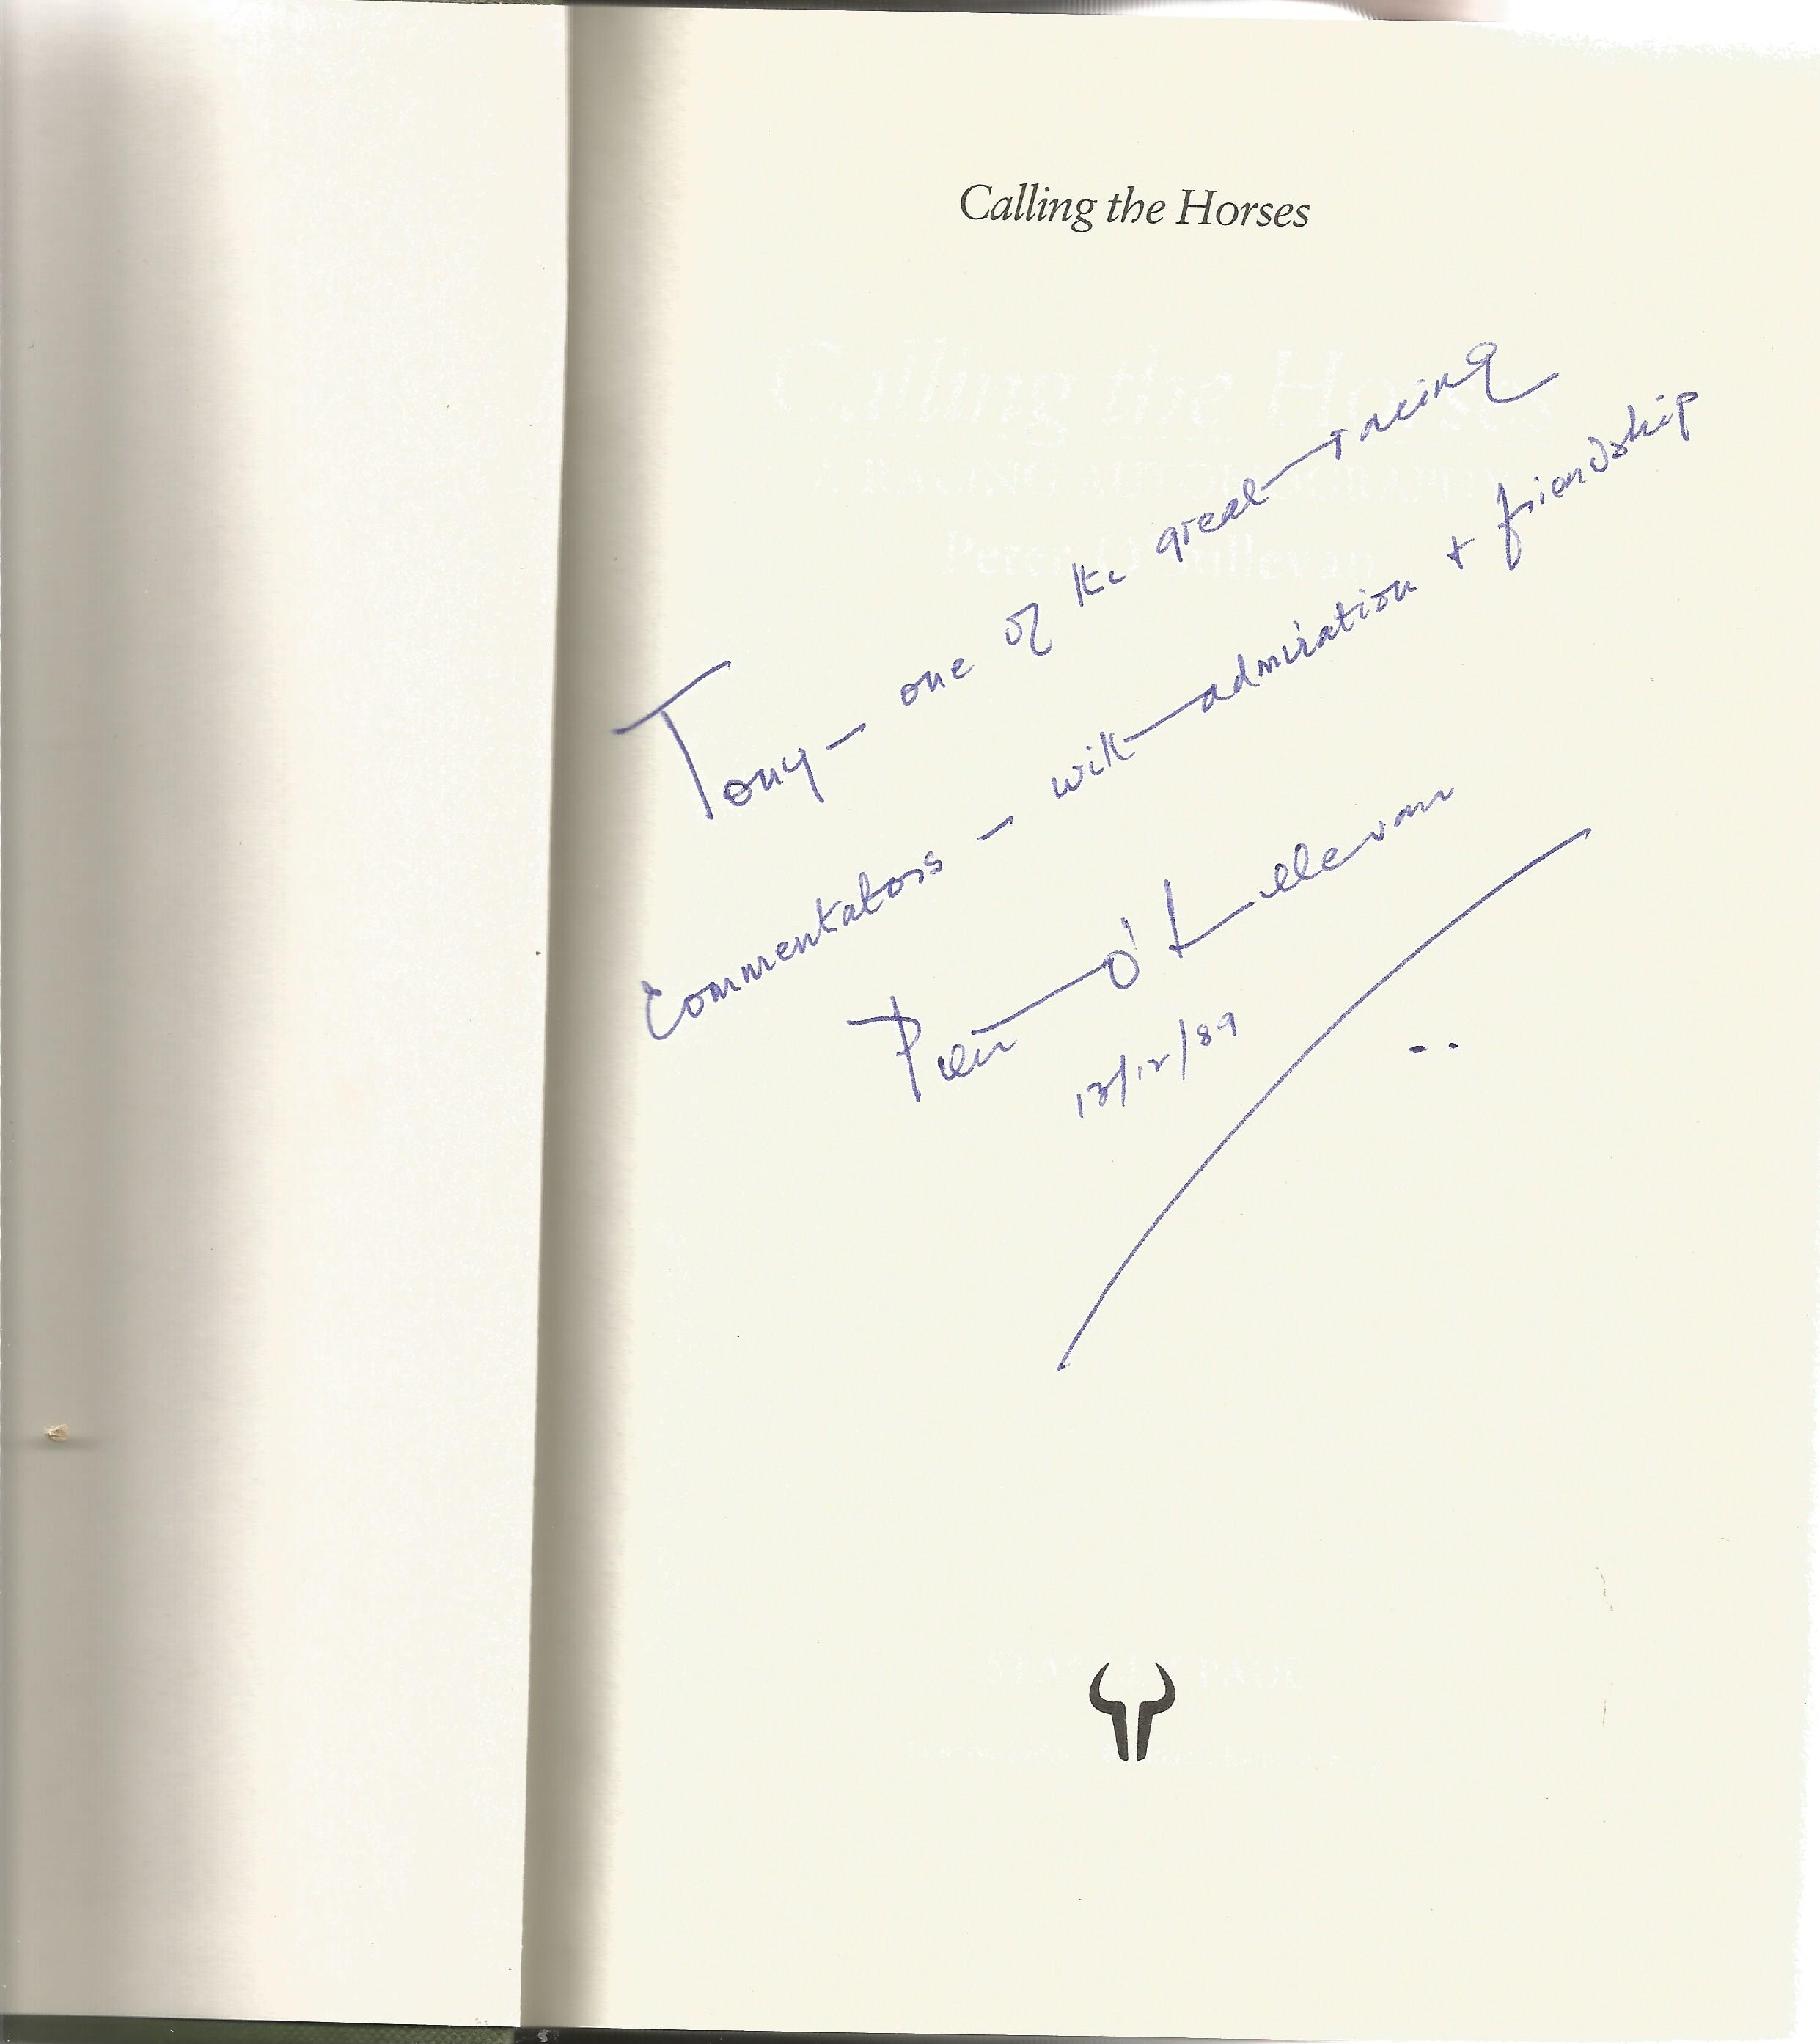 Peter O'Sulivan Hardback Book Calling the Horses A Racing Autobiography signed by the Author on - Image 2 of 2